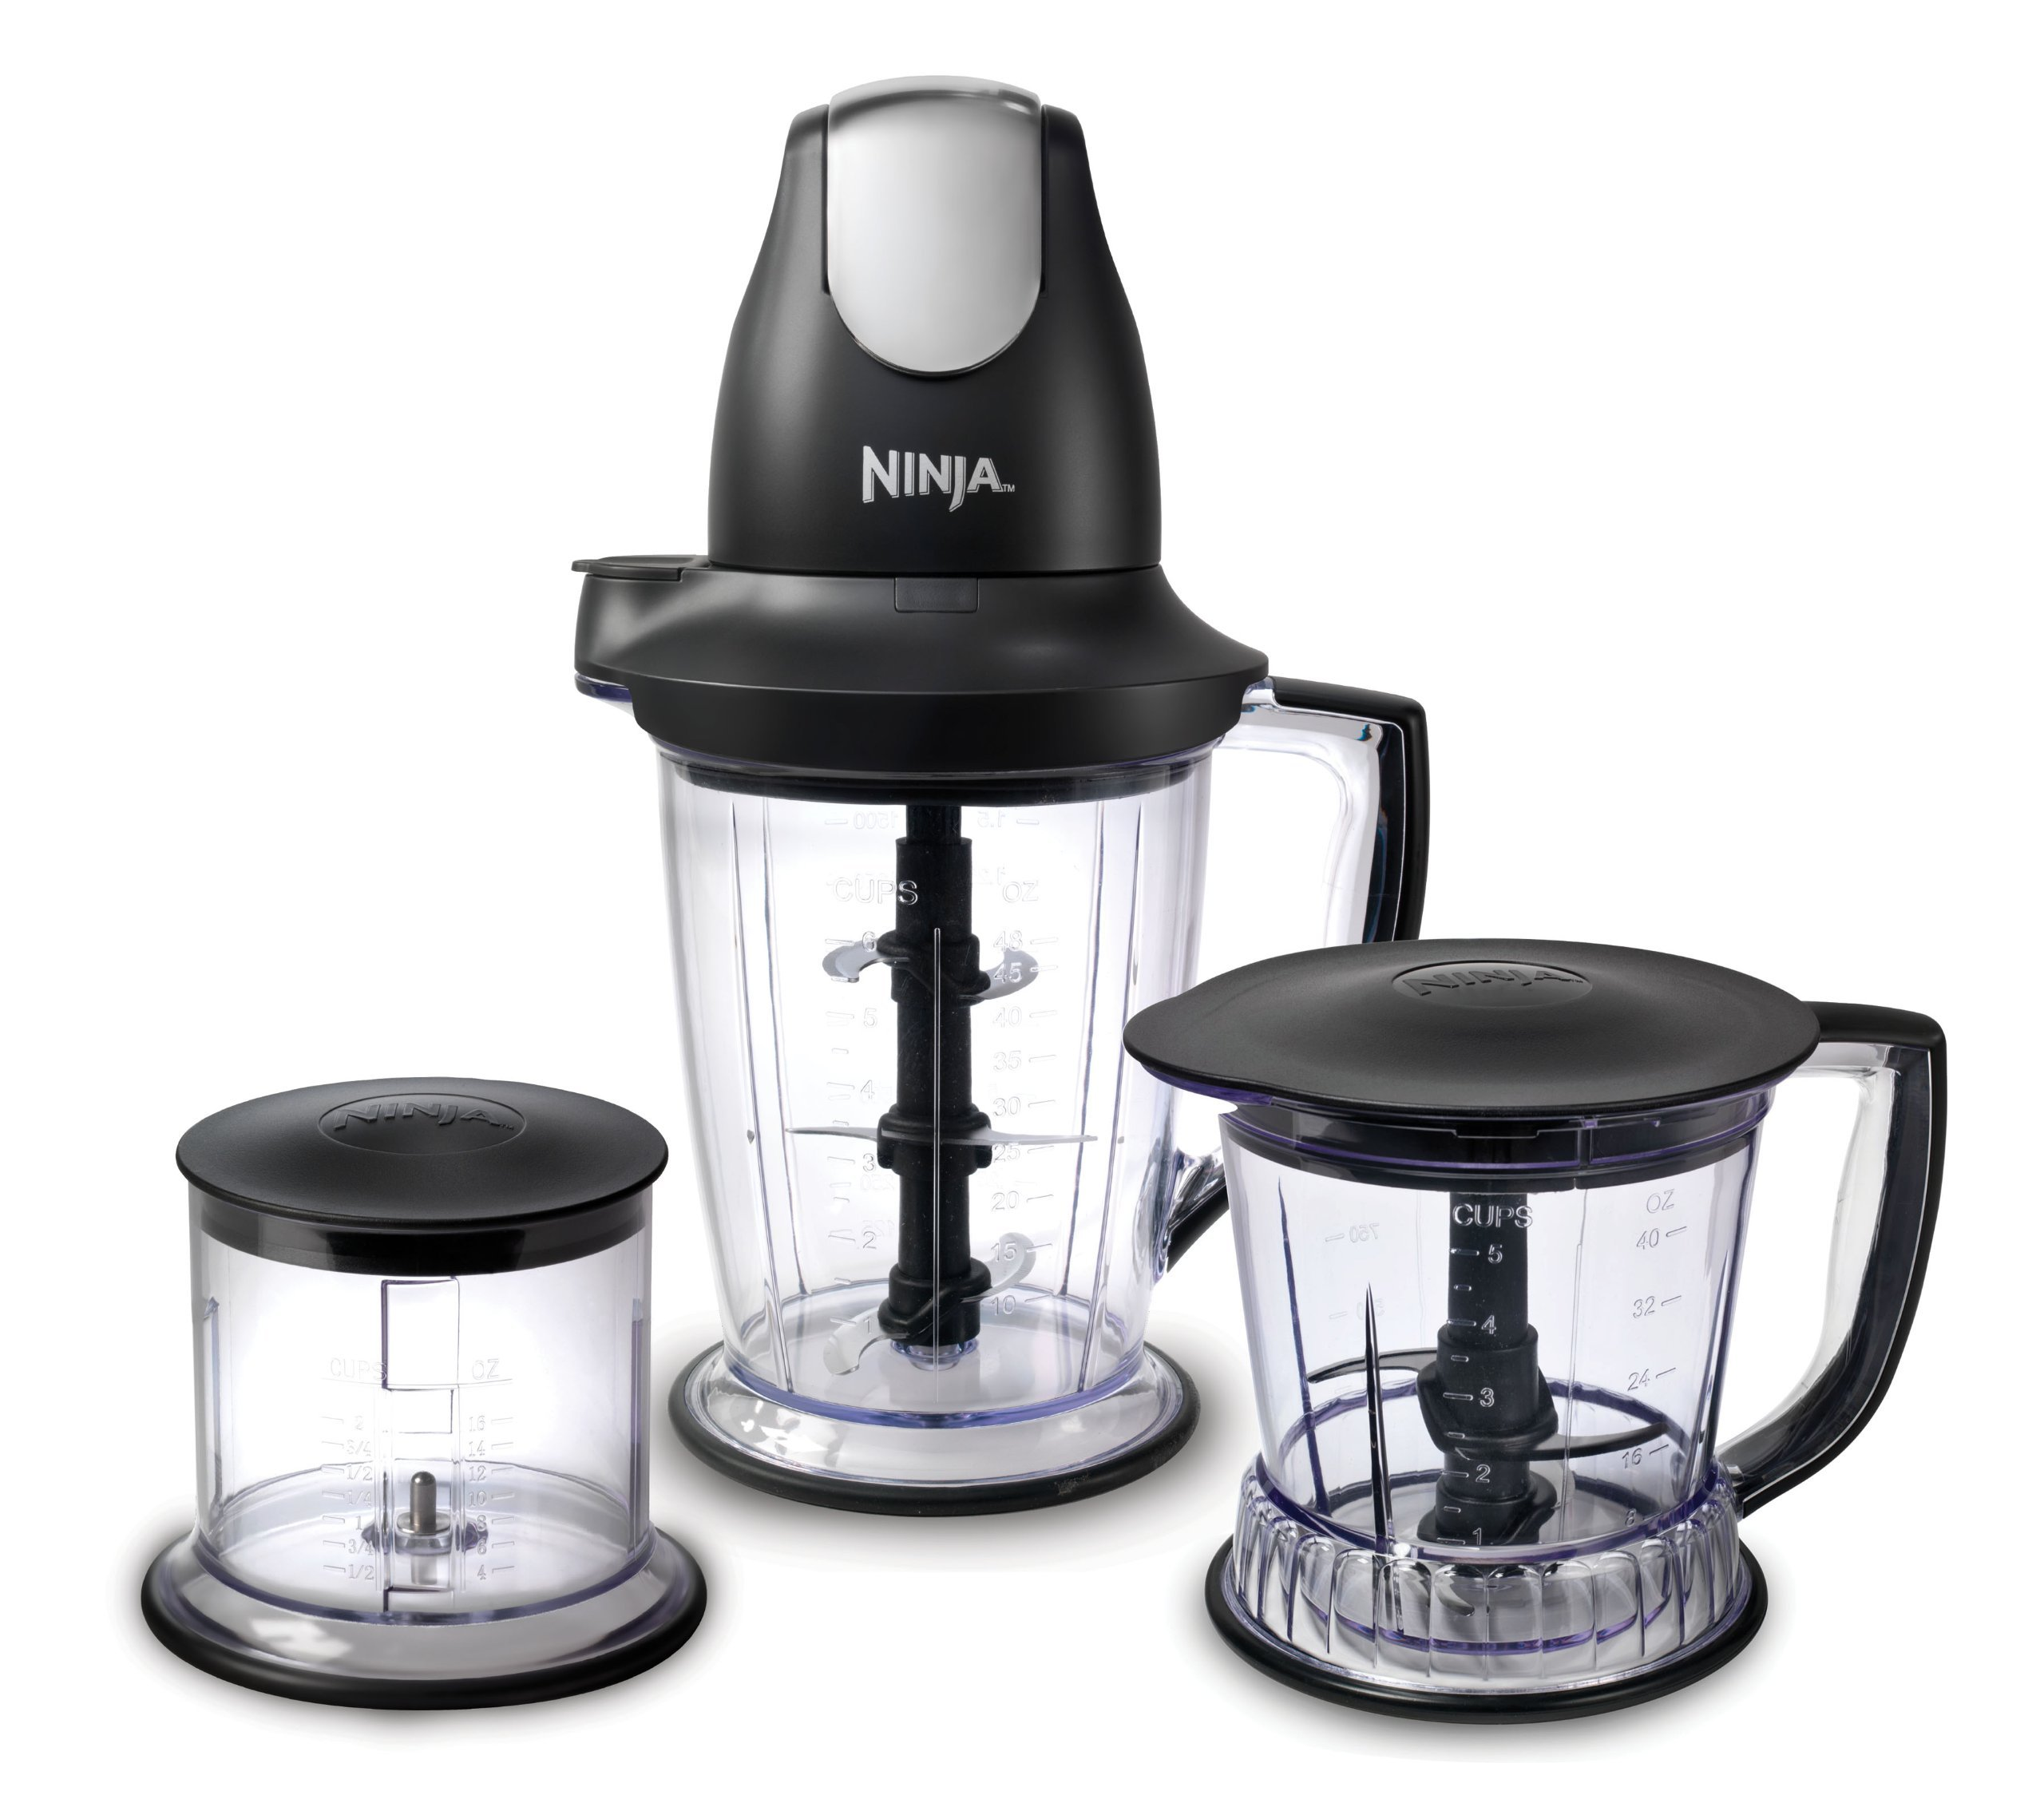 Ninja Blender/Food Processor with 450-Watt Base, 48oz Pitcher, 16oz Chopper Bowl, and 40oz Processor Bowl for Shakes, Smoothies, and Meal Prep (QB1004) (Certified Refurbished)